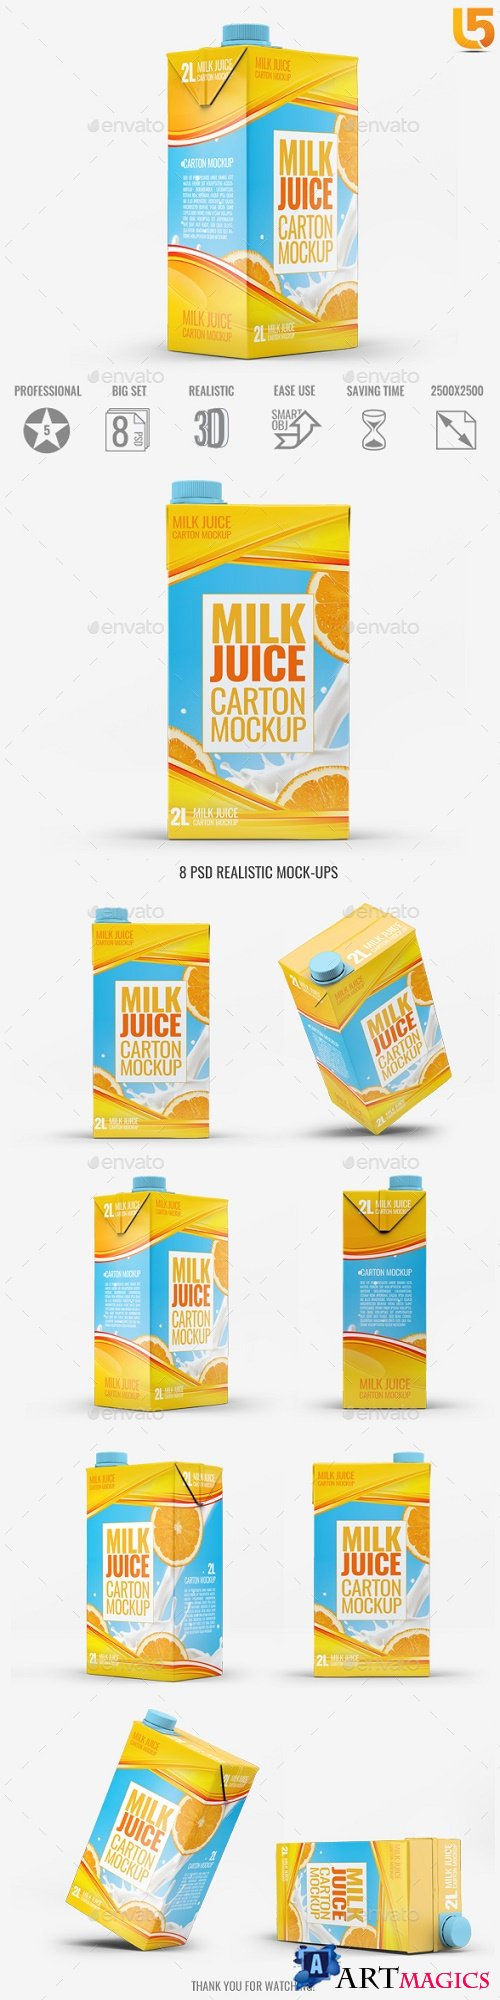 Milk or Juice Carton Mock-Up v2 - 21791146